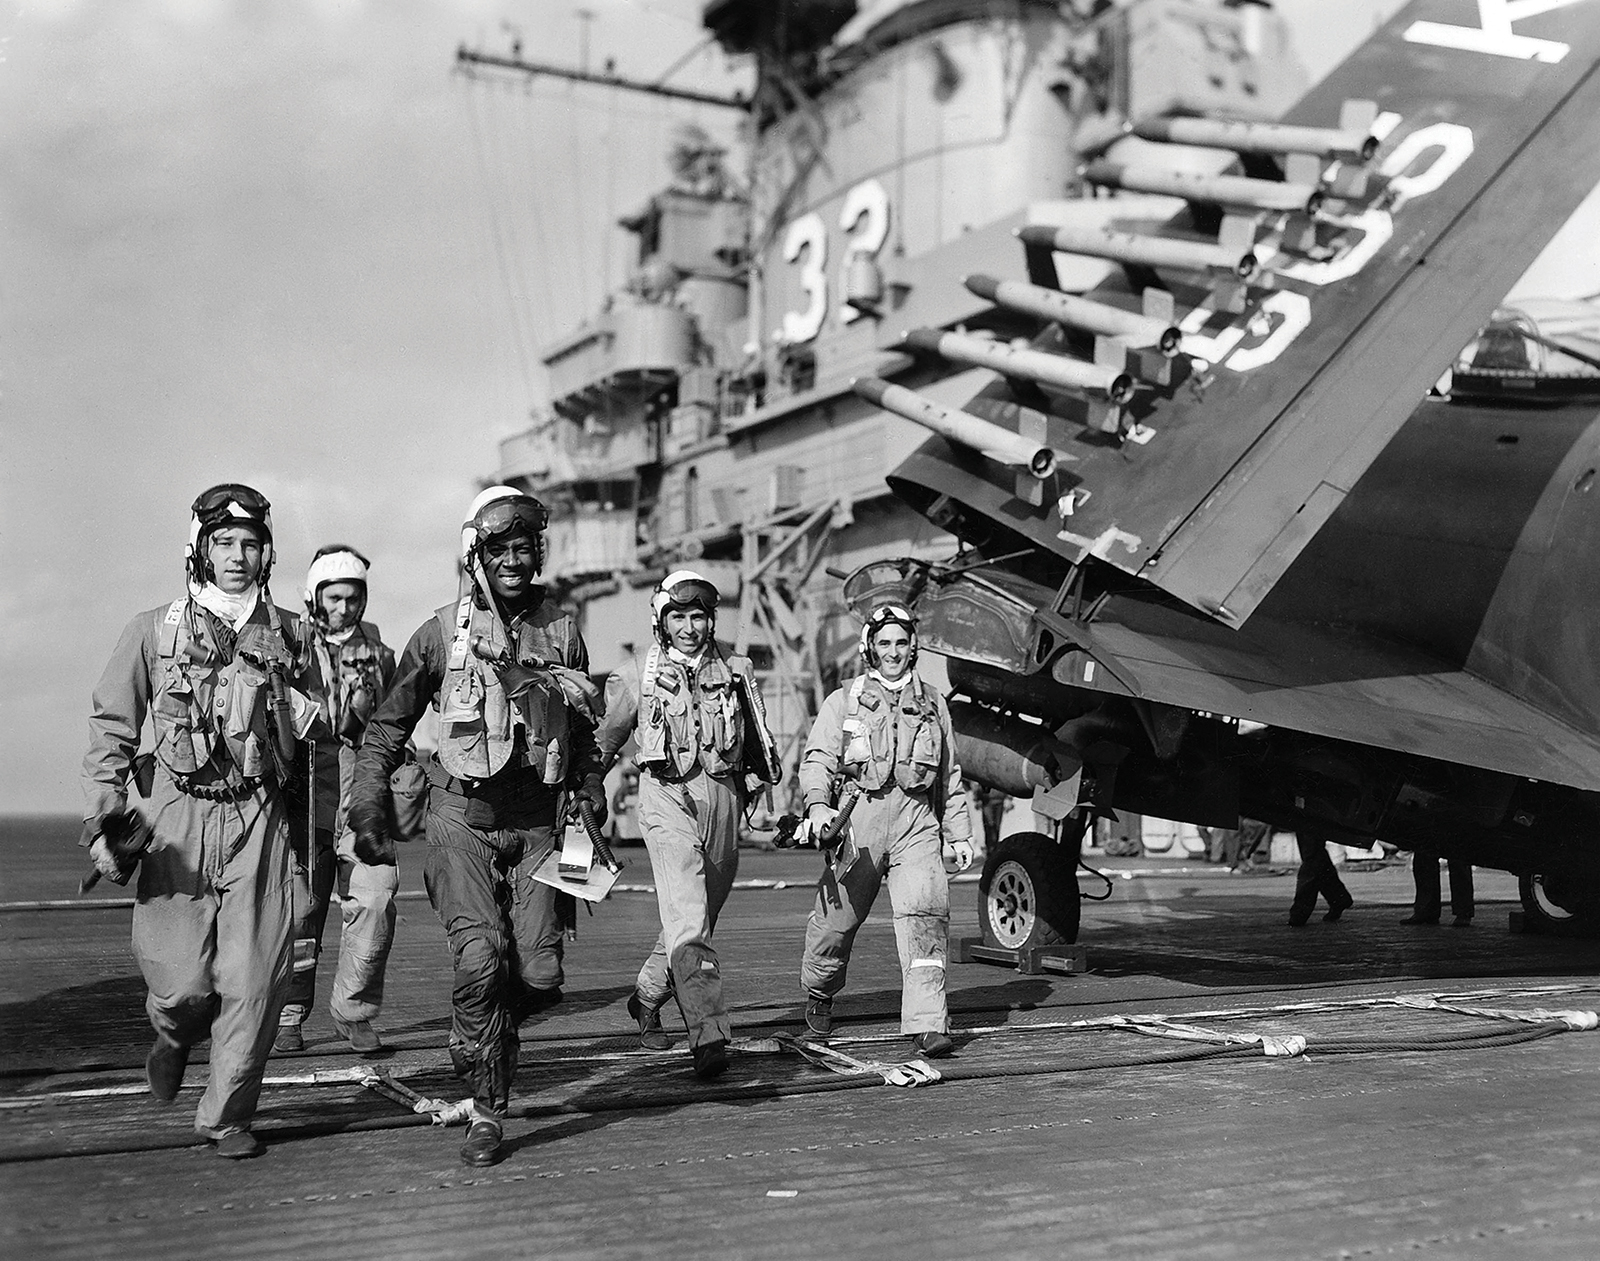 Ensign Jesse L. Brown, the first African-American naval aviator, walking with his cremates aboard the USS Leyte during the Korean War. (photo via Bryan Makos)